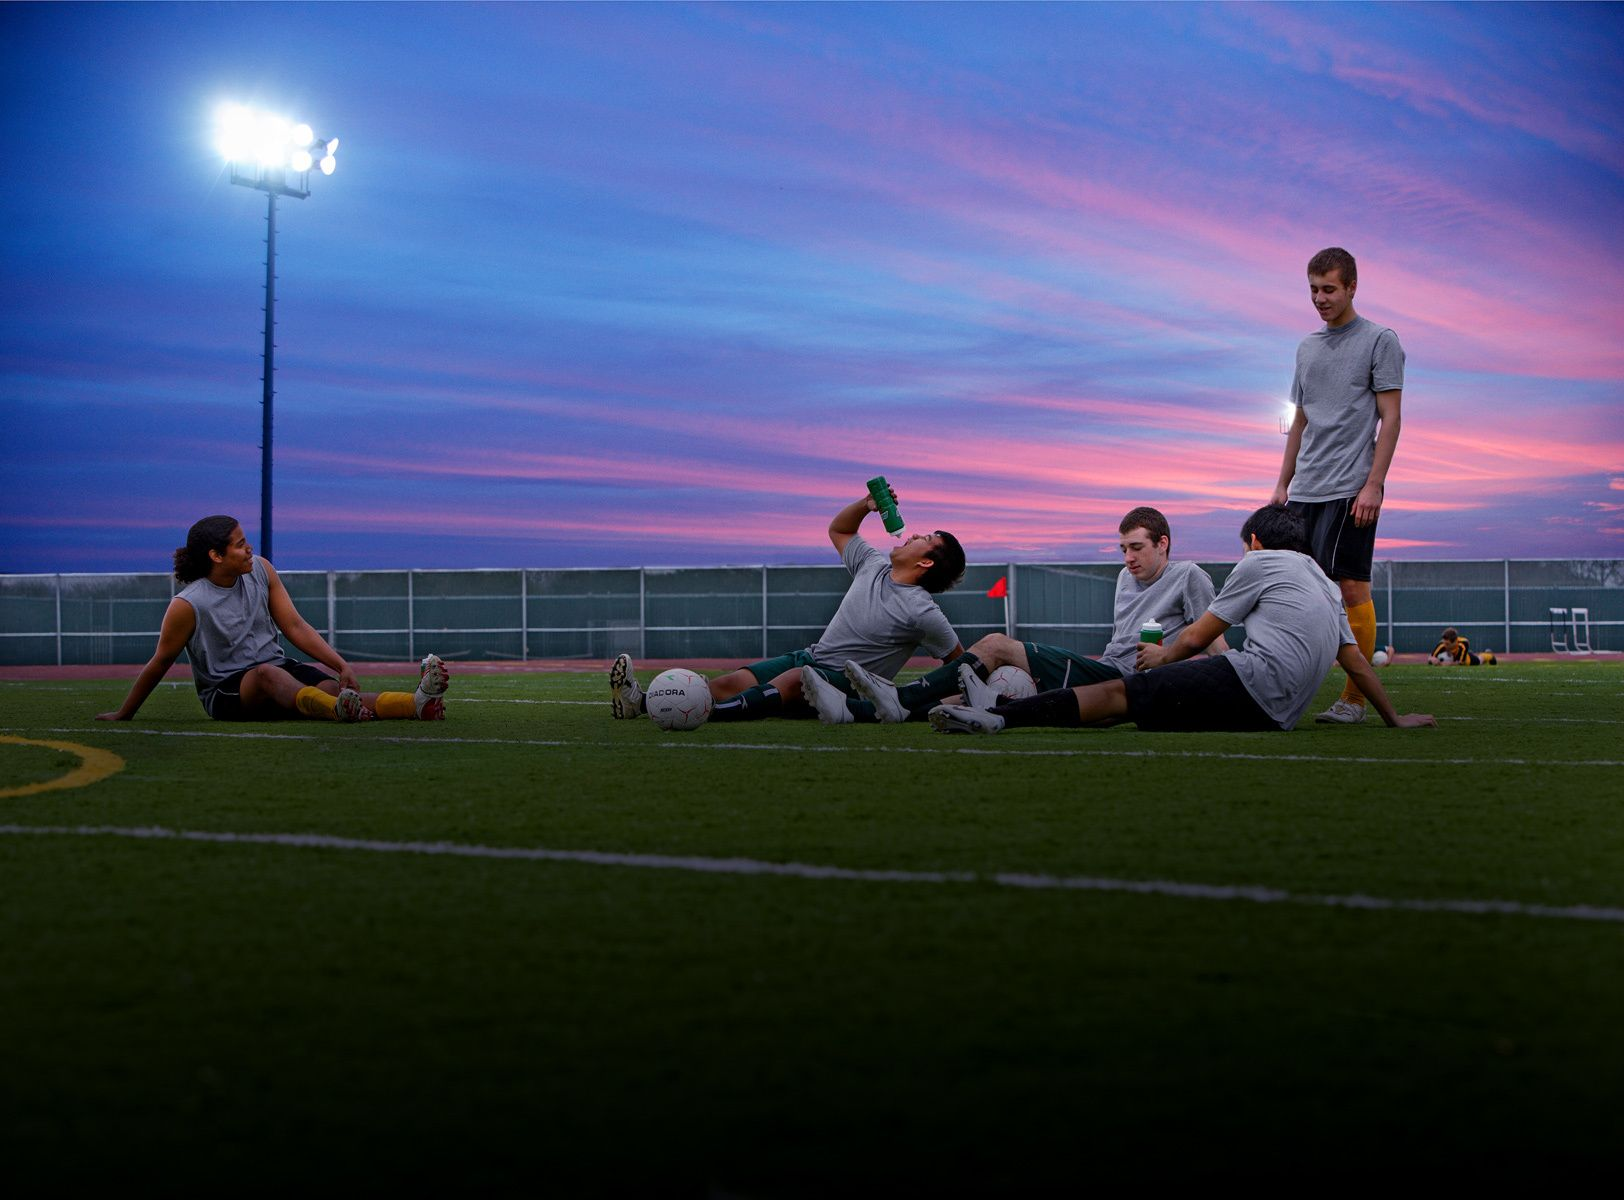 Soccer Players Sunset